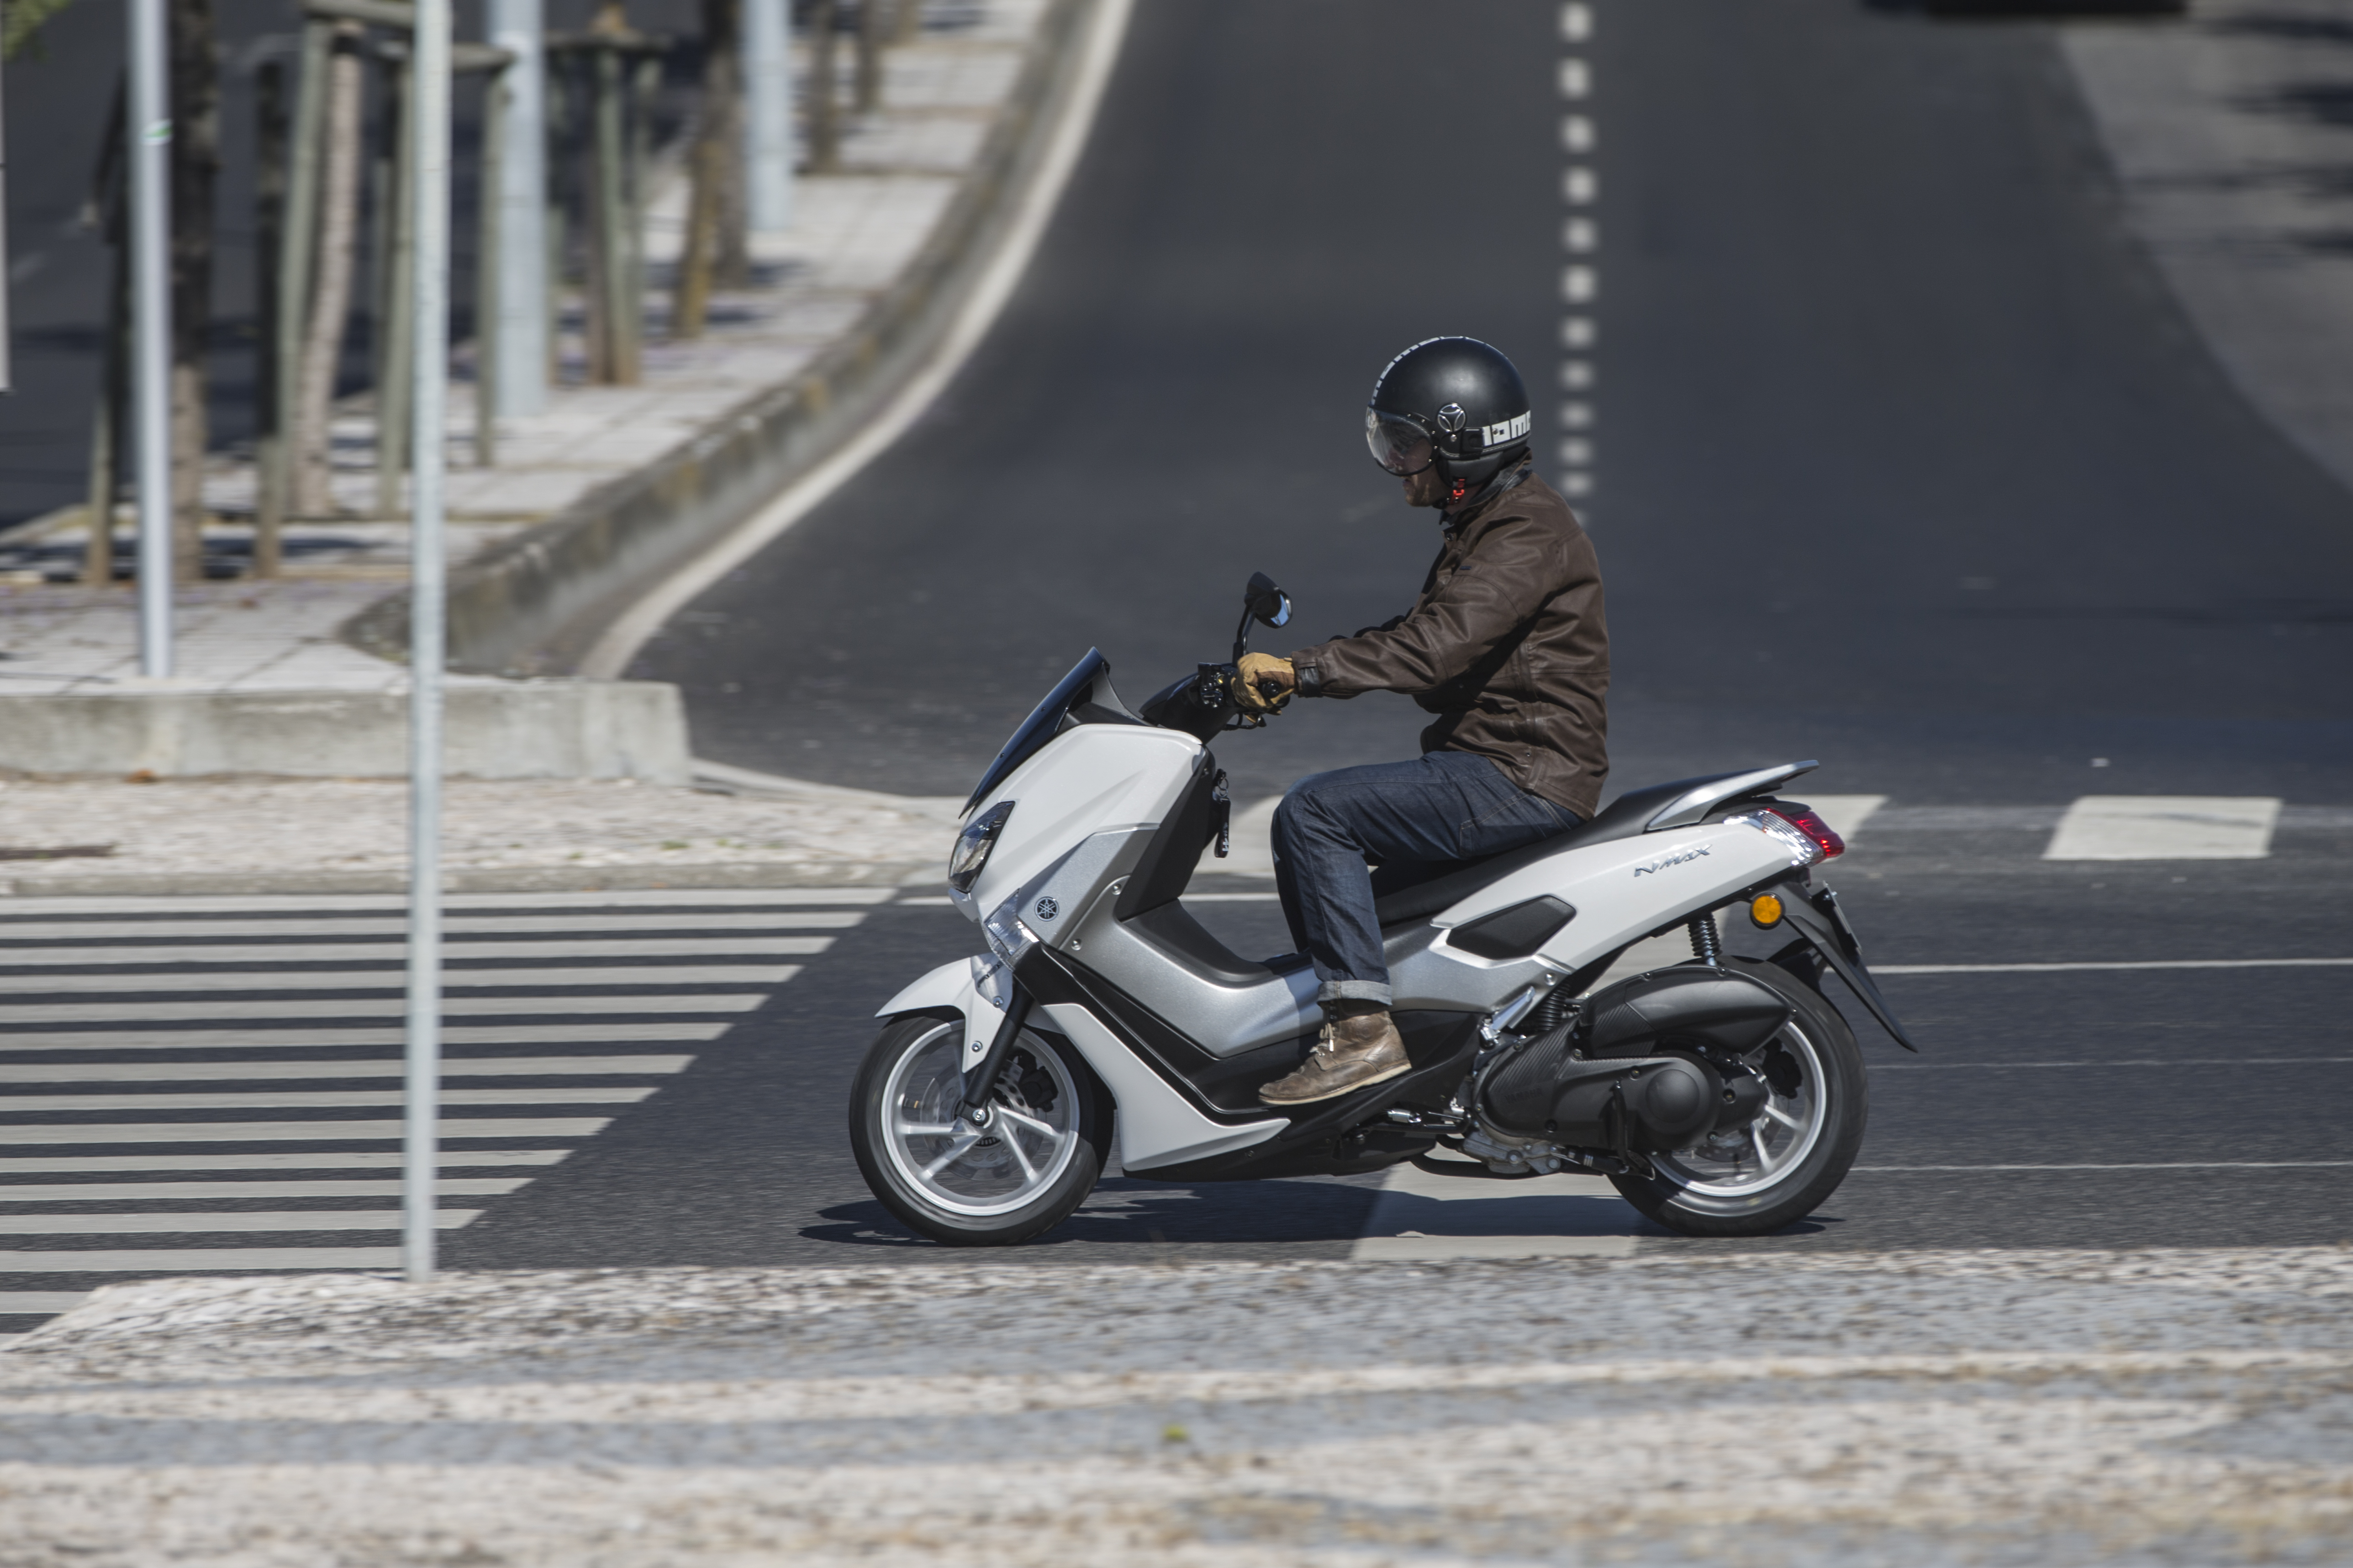 First Ride Yamaha Nmax 125 Review Visordown